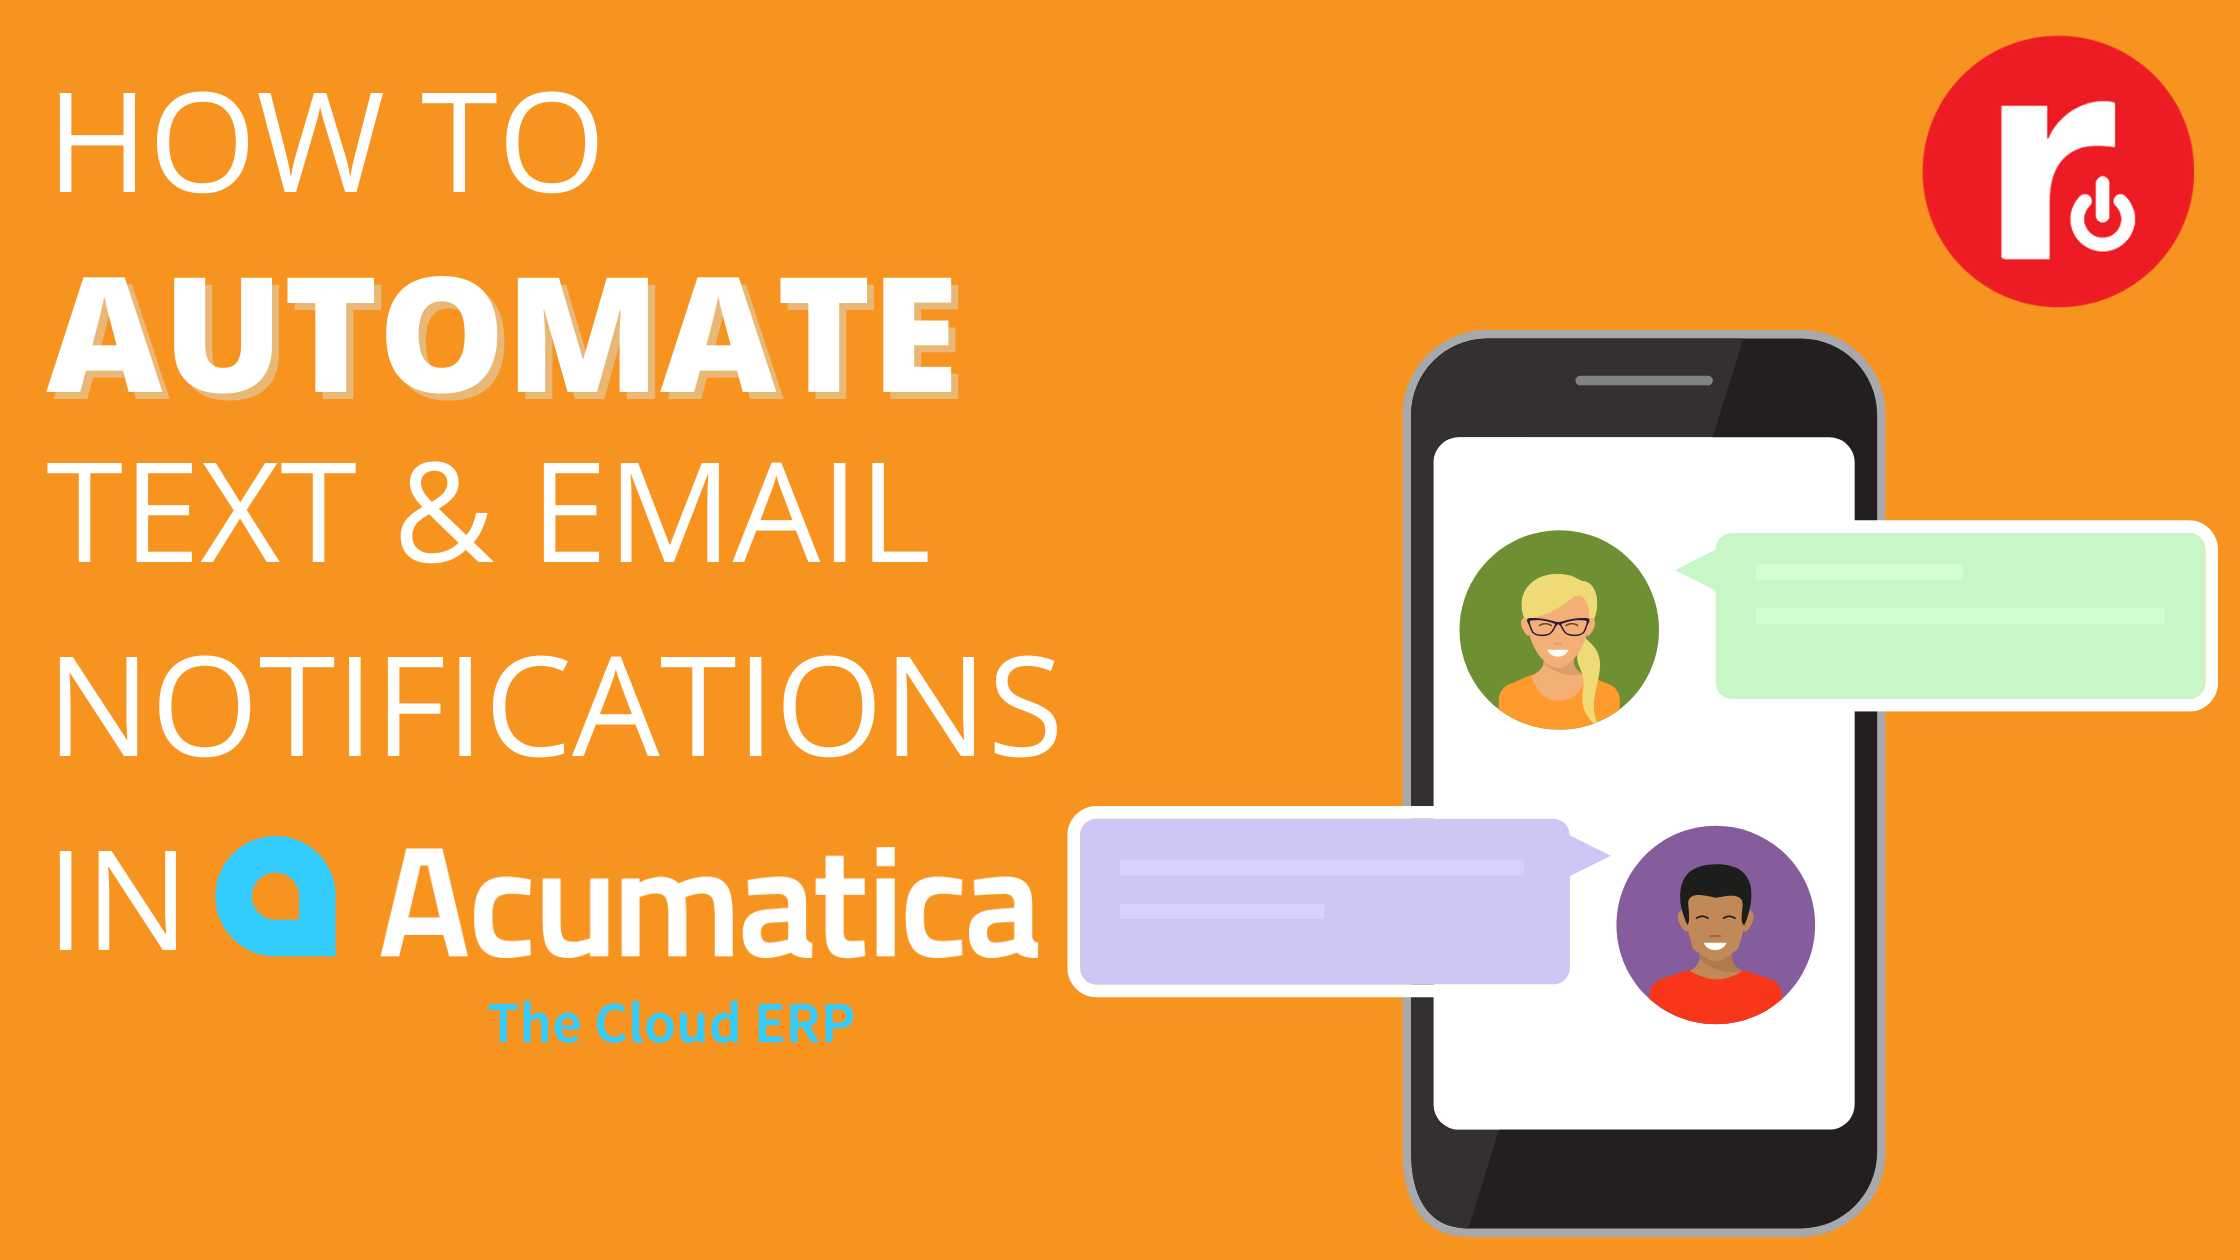 How to Automate Text and Email Notification in Acumatica